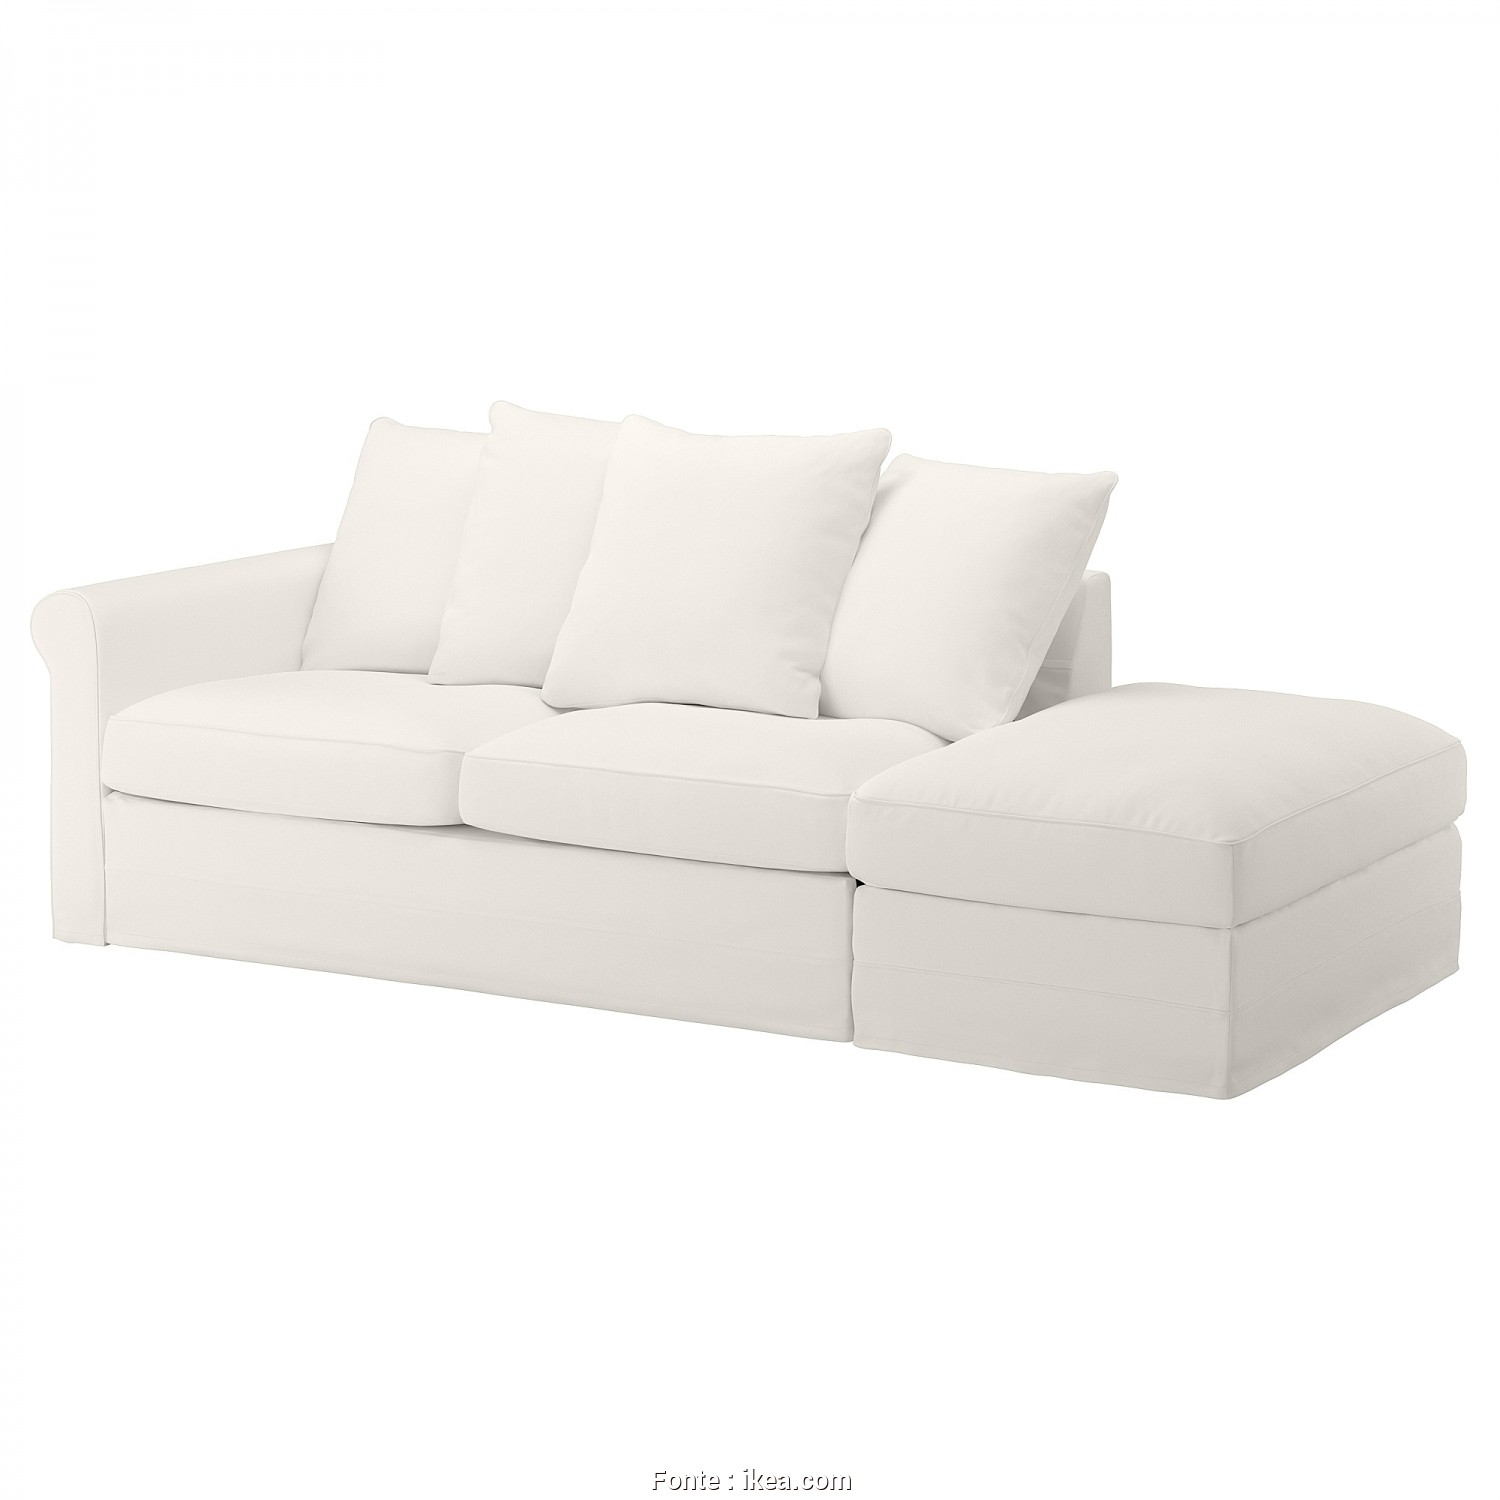 How Do, Open An Ikea Futon, Completare GRÖNLID Sleeper Sofa, With Open End, Inseros White